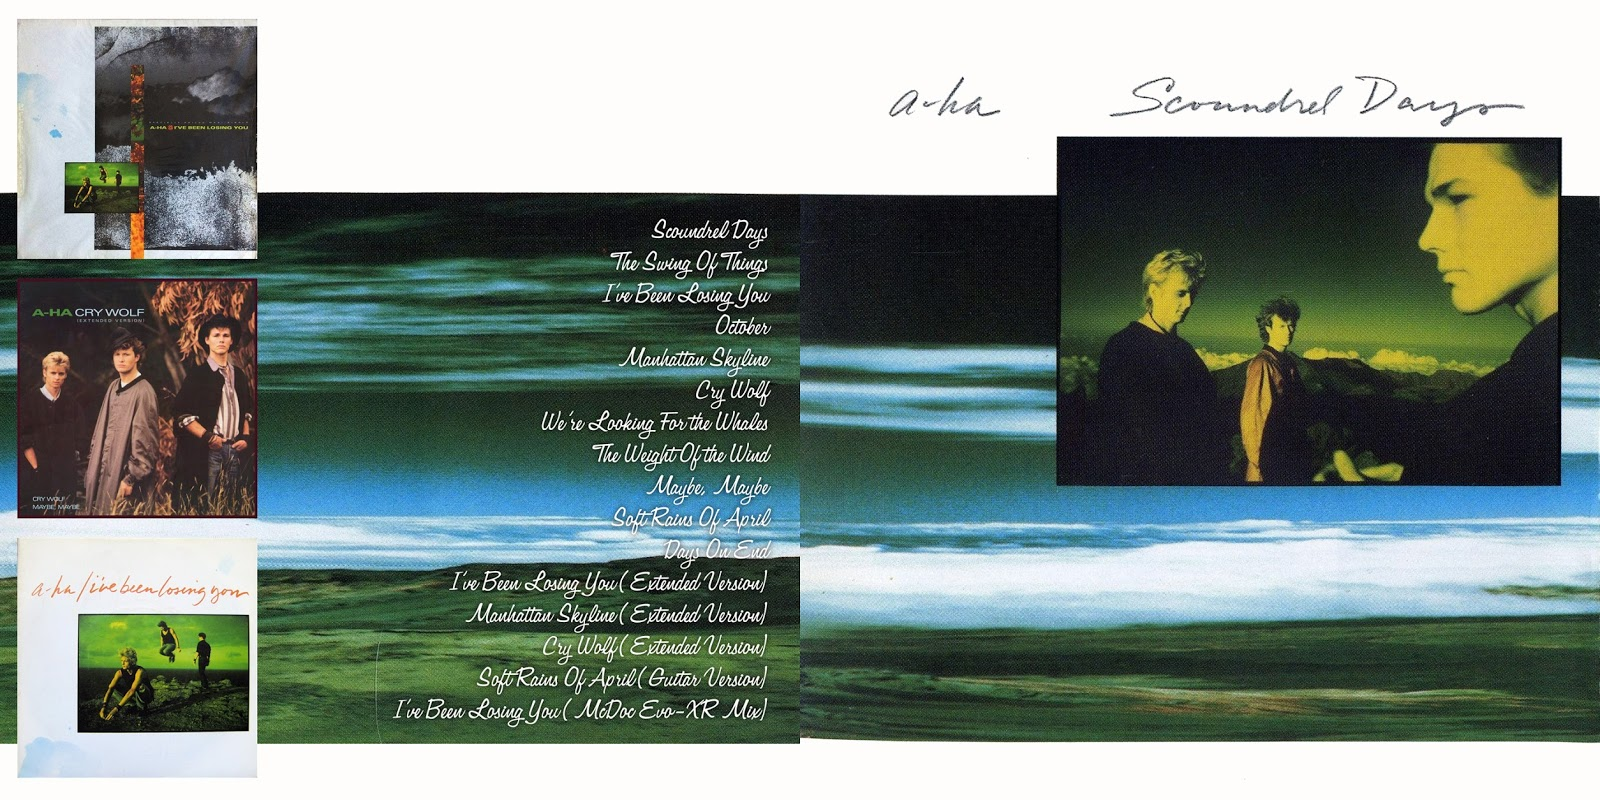 All the Air In My Lungs: A-ha - Scoundrel Days - 1986